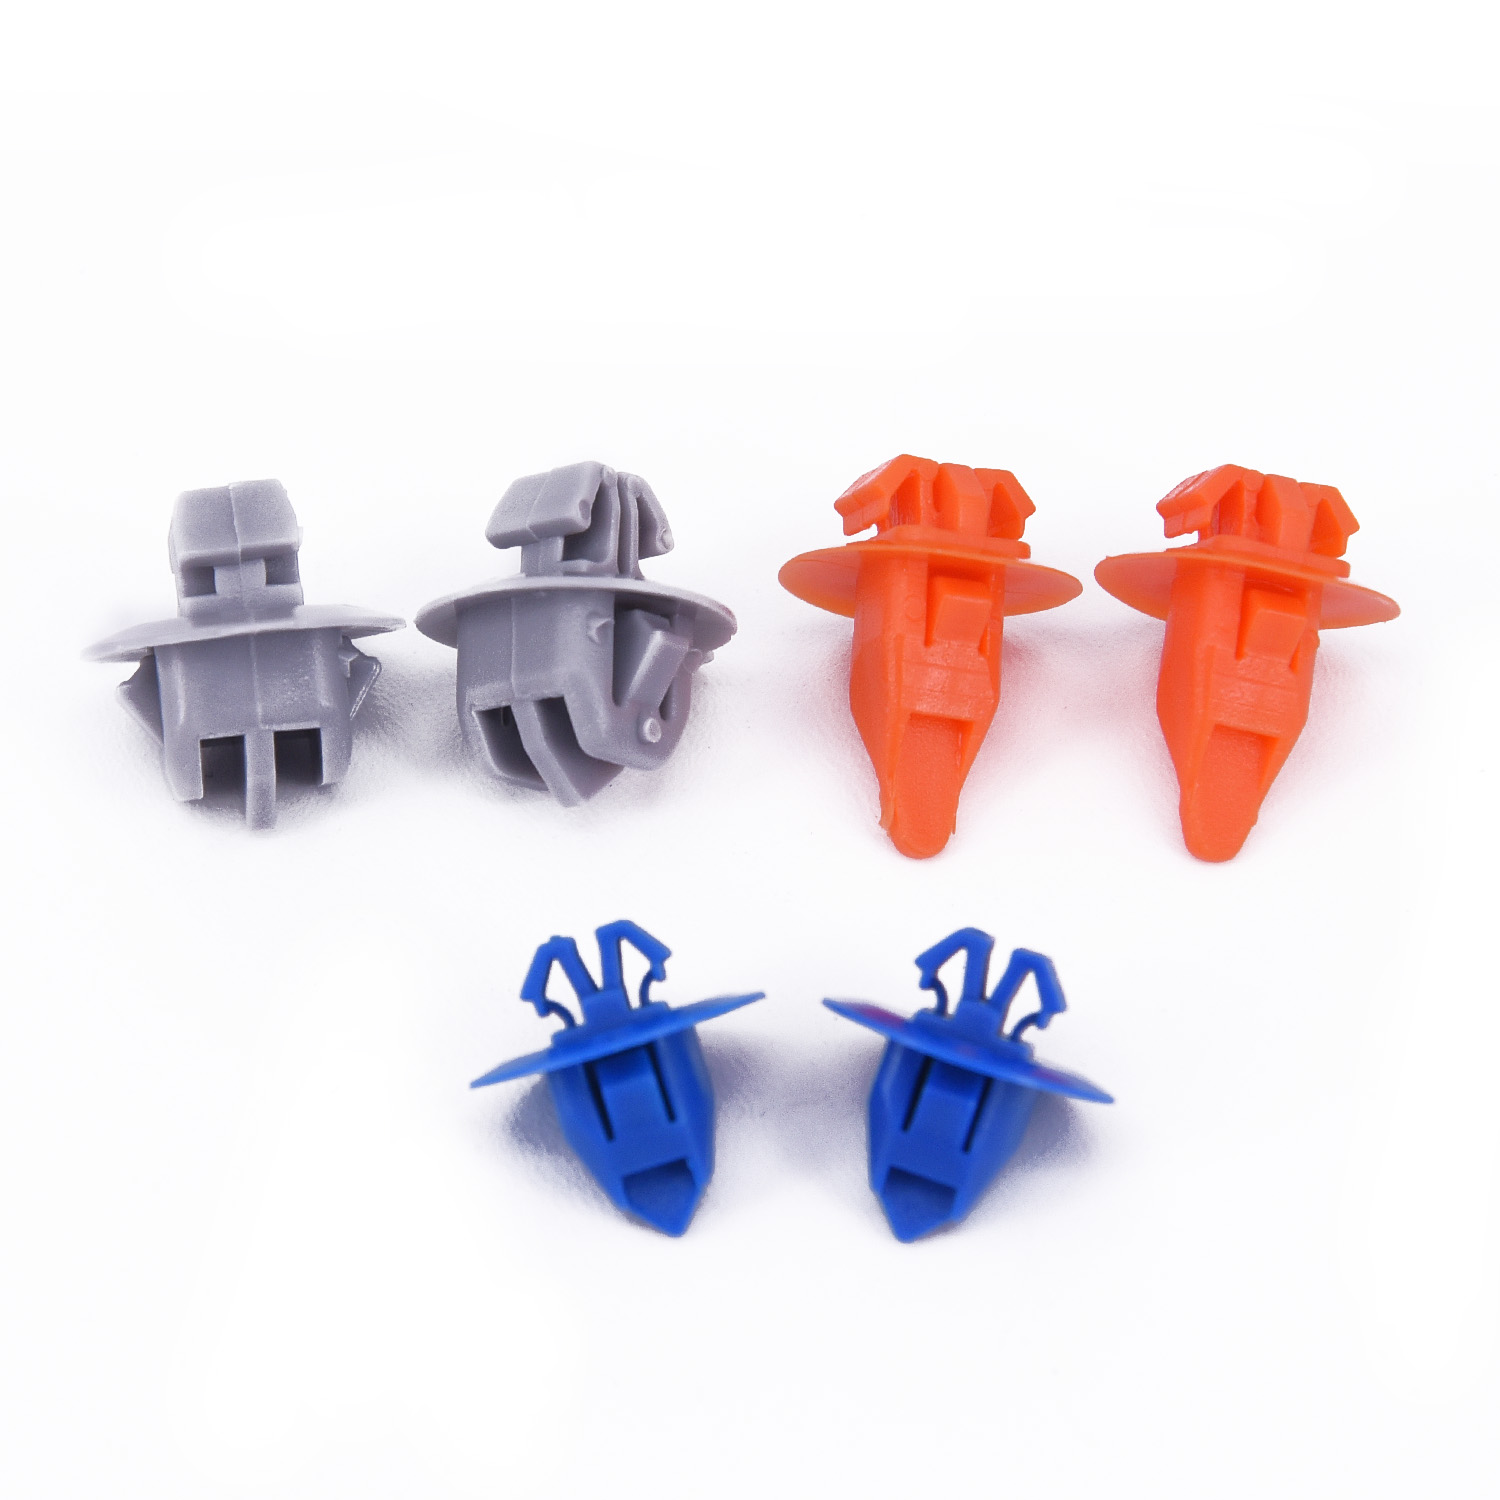 30pcs Car Door Trim Body Moulding Panel Clips For Toyota RAV4 4Runner FJ Cruiser